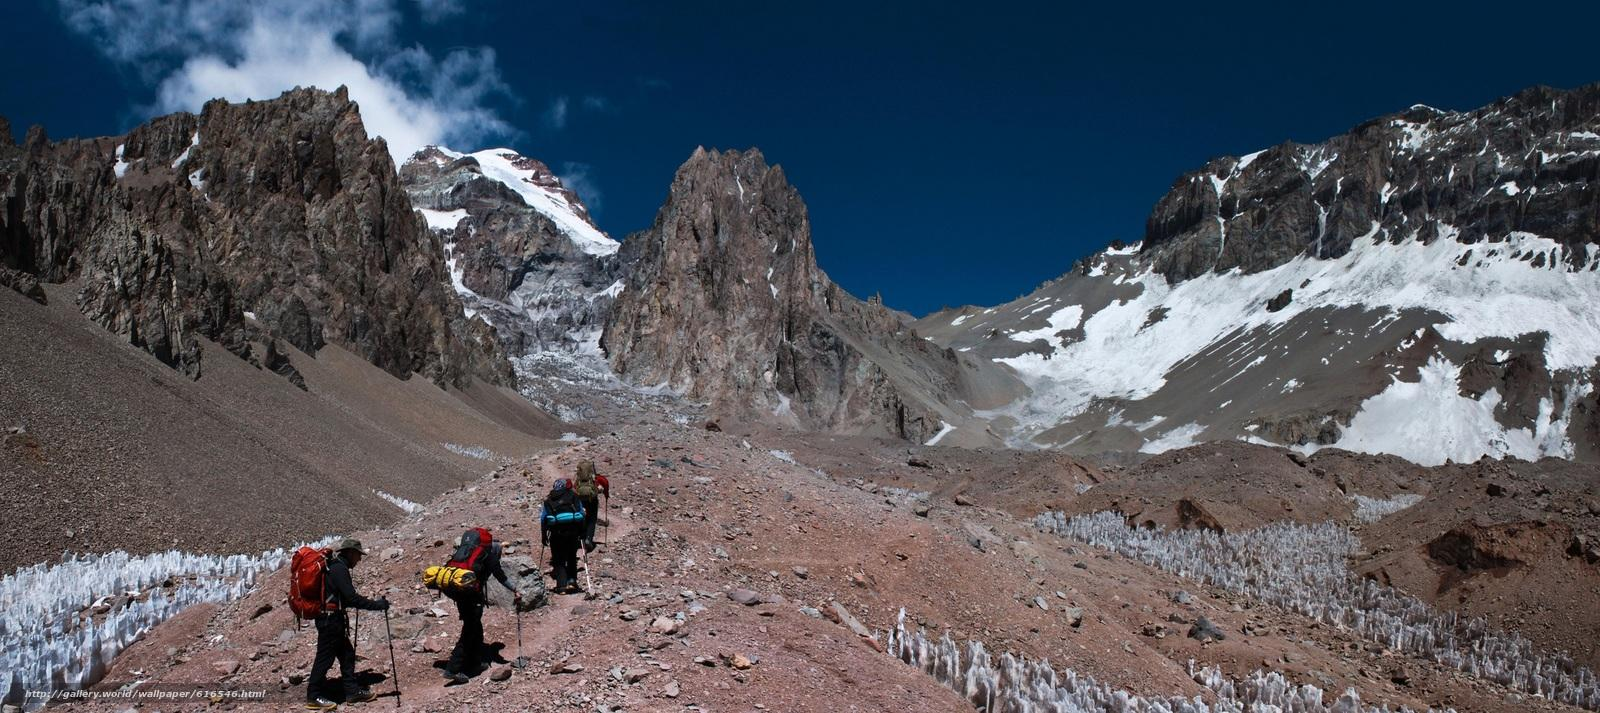 Download wallpapers Aconcagua, Mendoza, Argentina, Mountains free